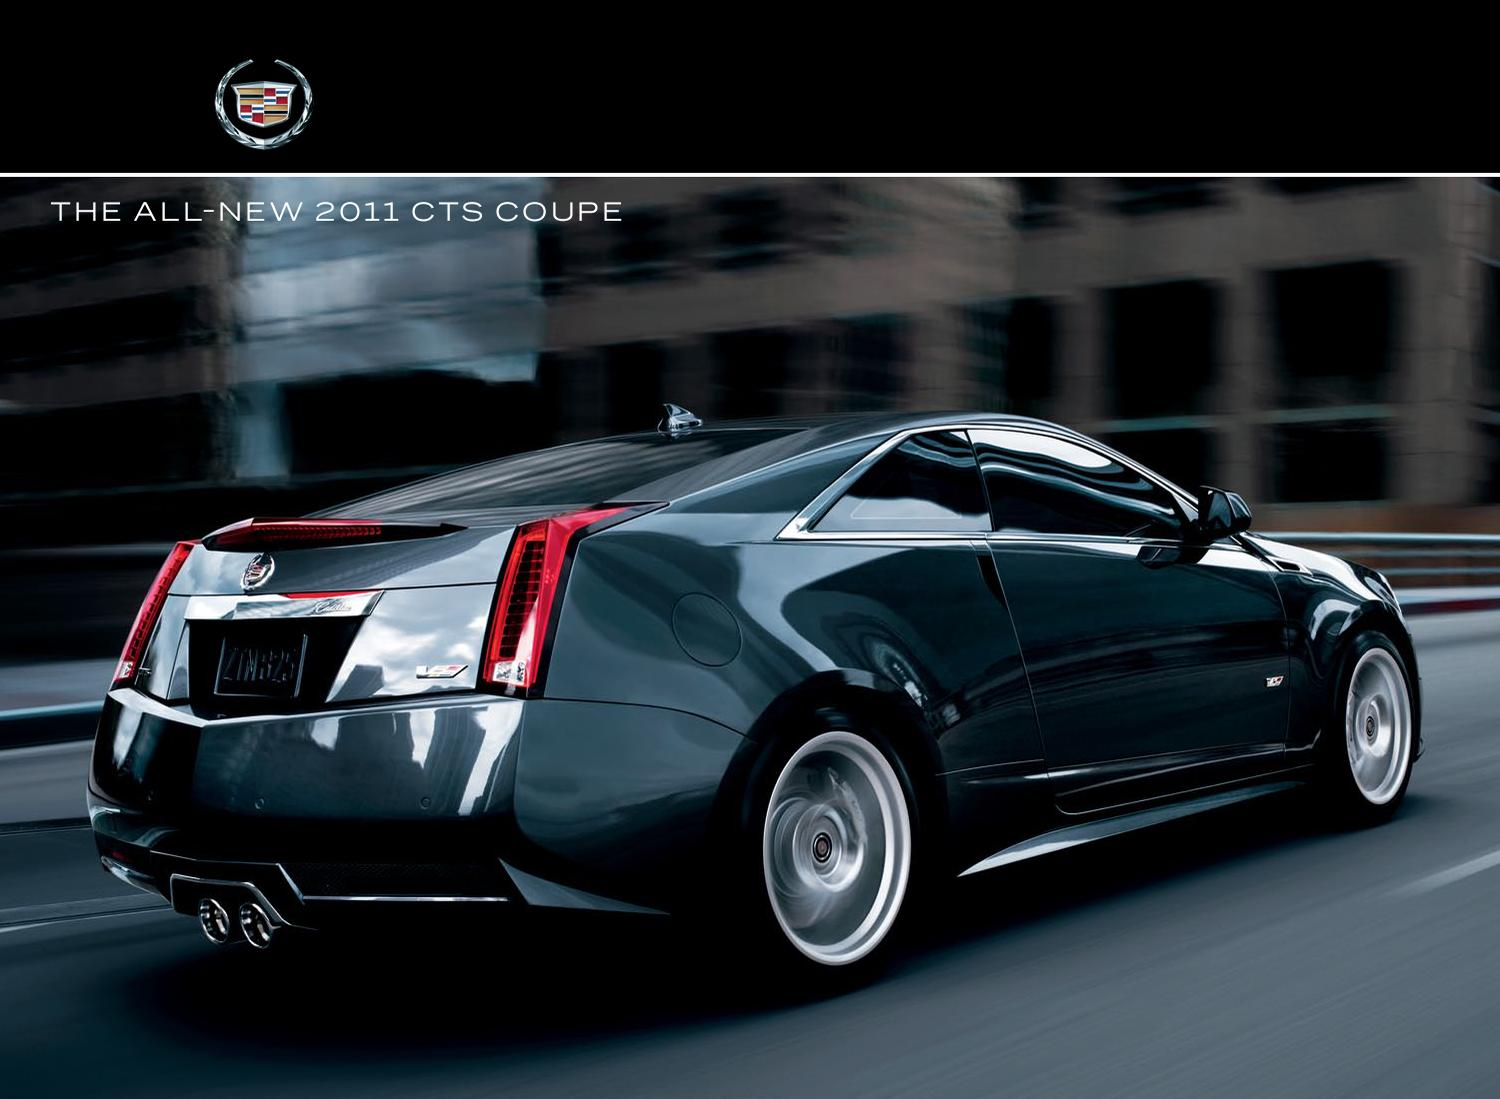 2011 Cadillac Cts Coupe Brochure Usa By Ted Sluymer Issuu